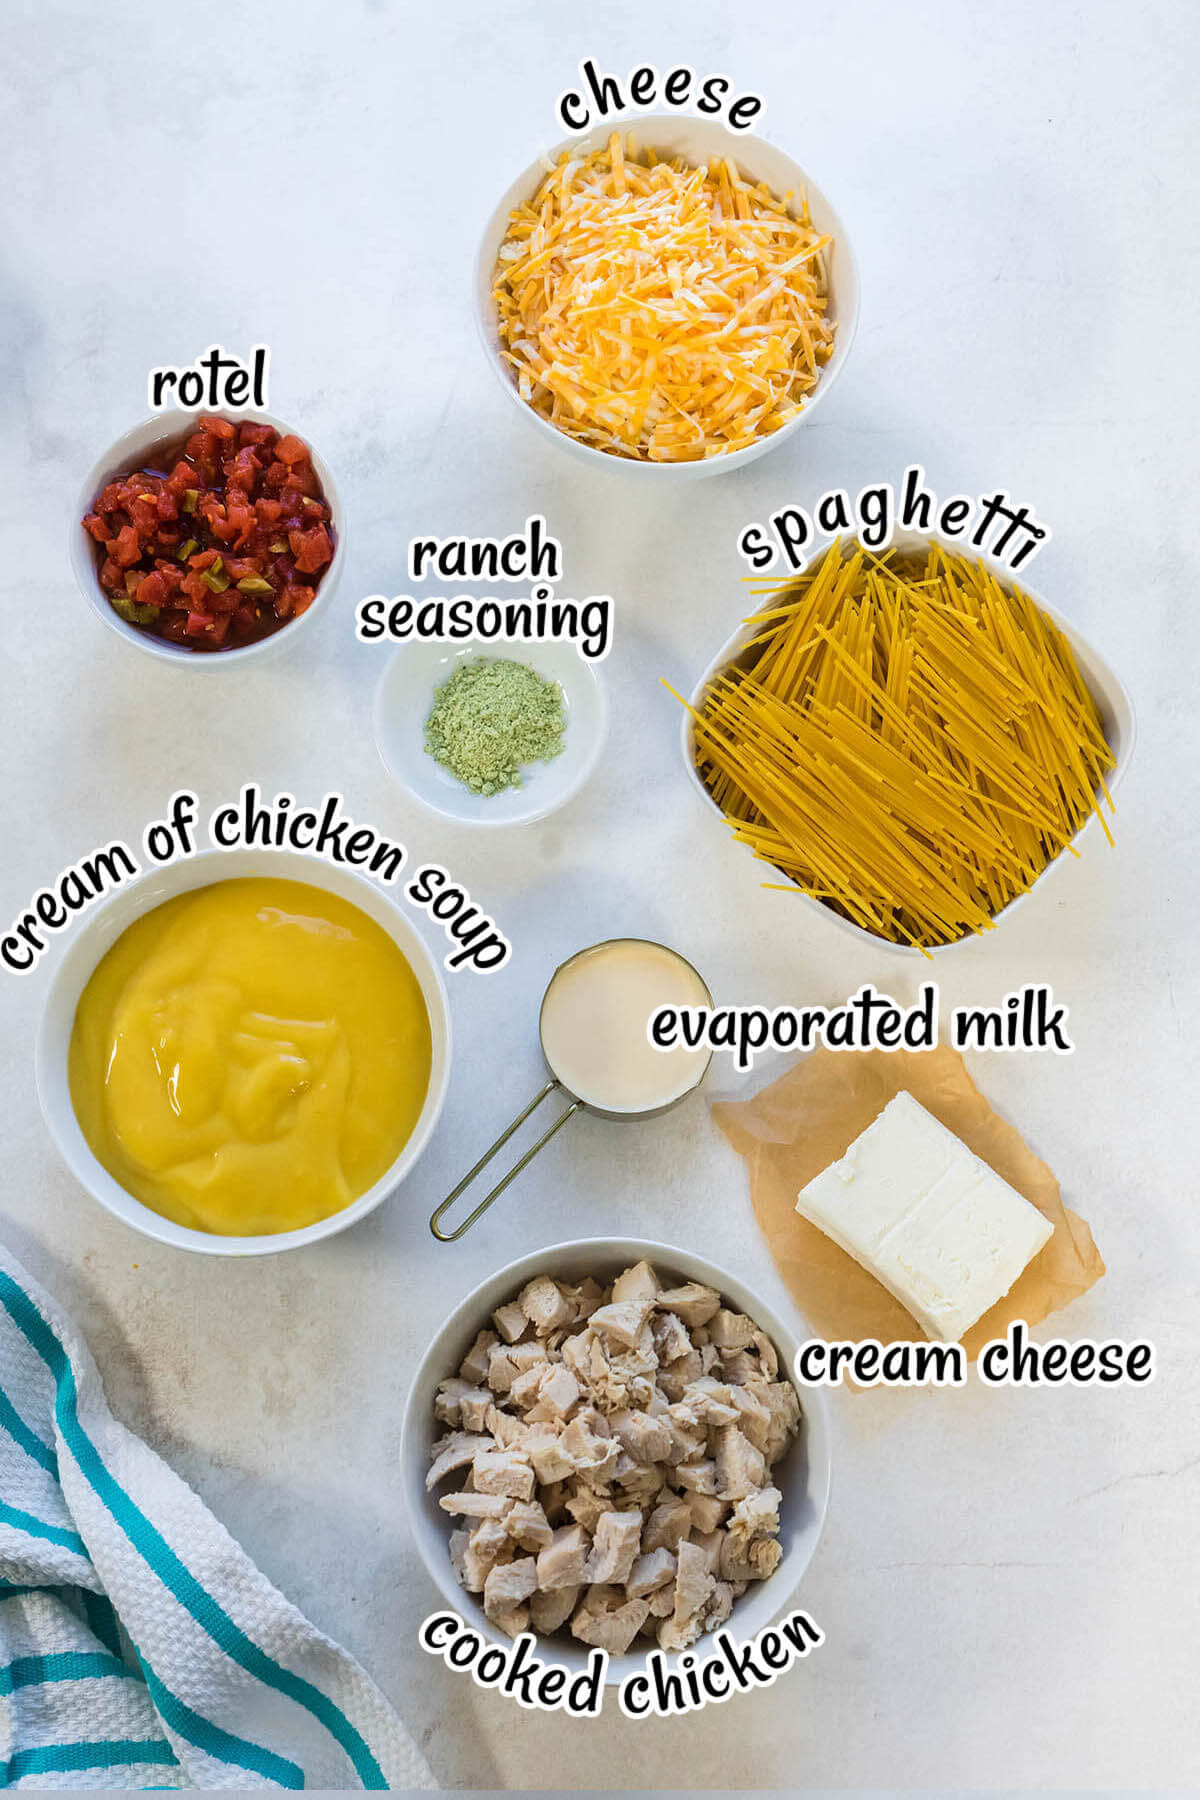 A photograph of the ingredients needed for Chicken Spaghetti with rotel with print overlay.